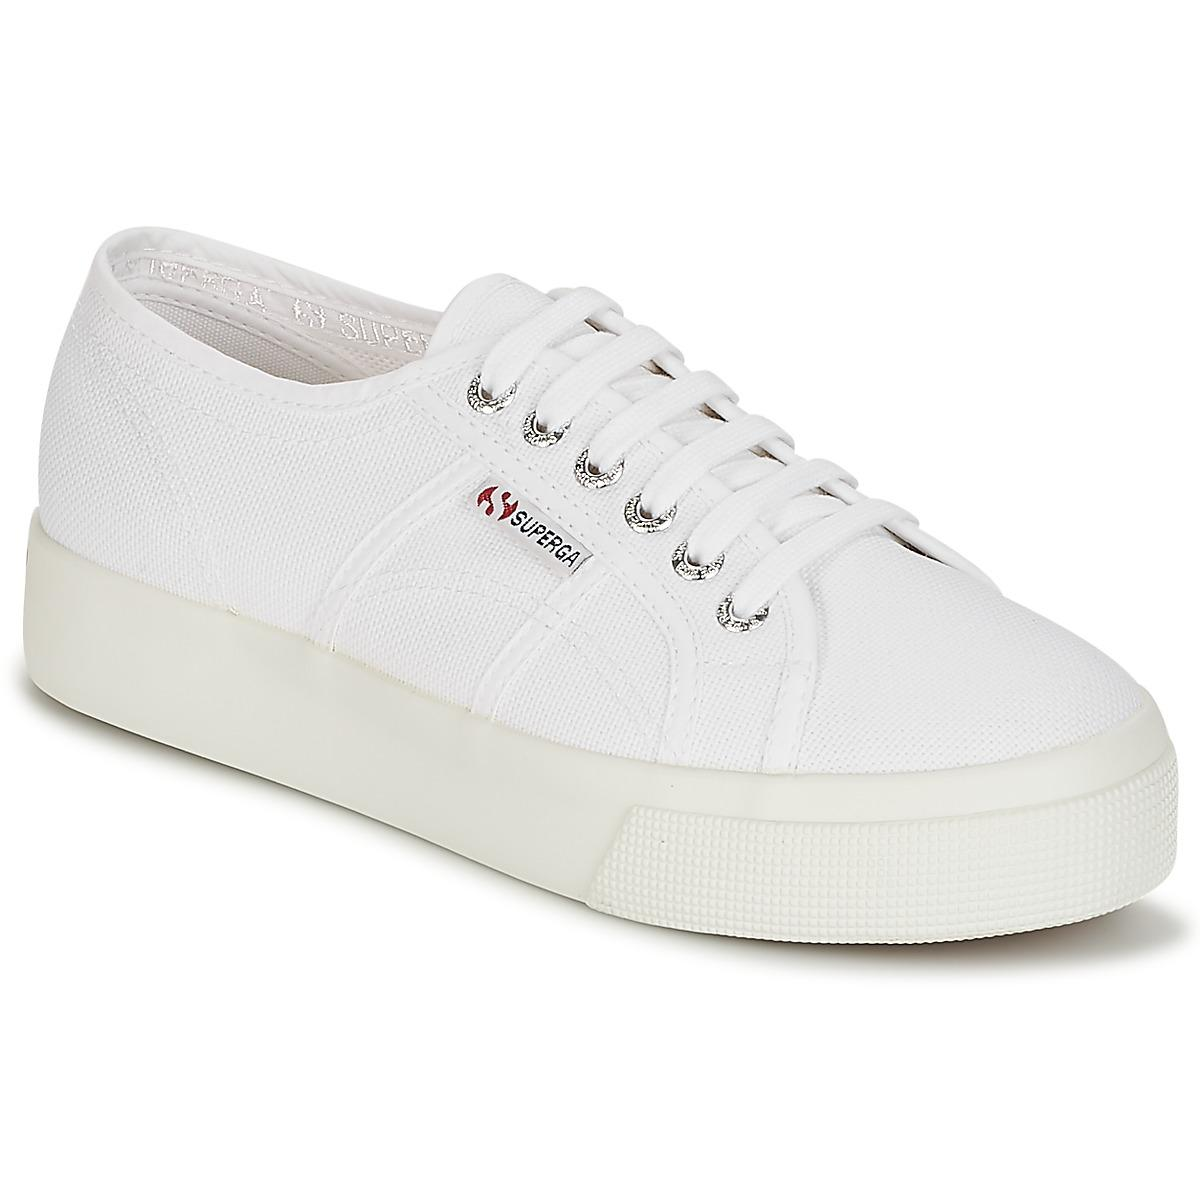 Superga Womens White 2790 Acotw Trainers Women's Shoes (trainers) In White - Save 32%